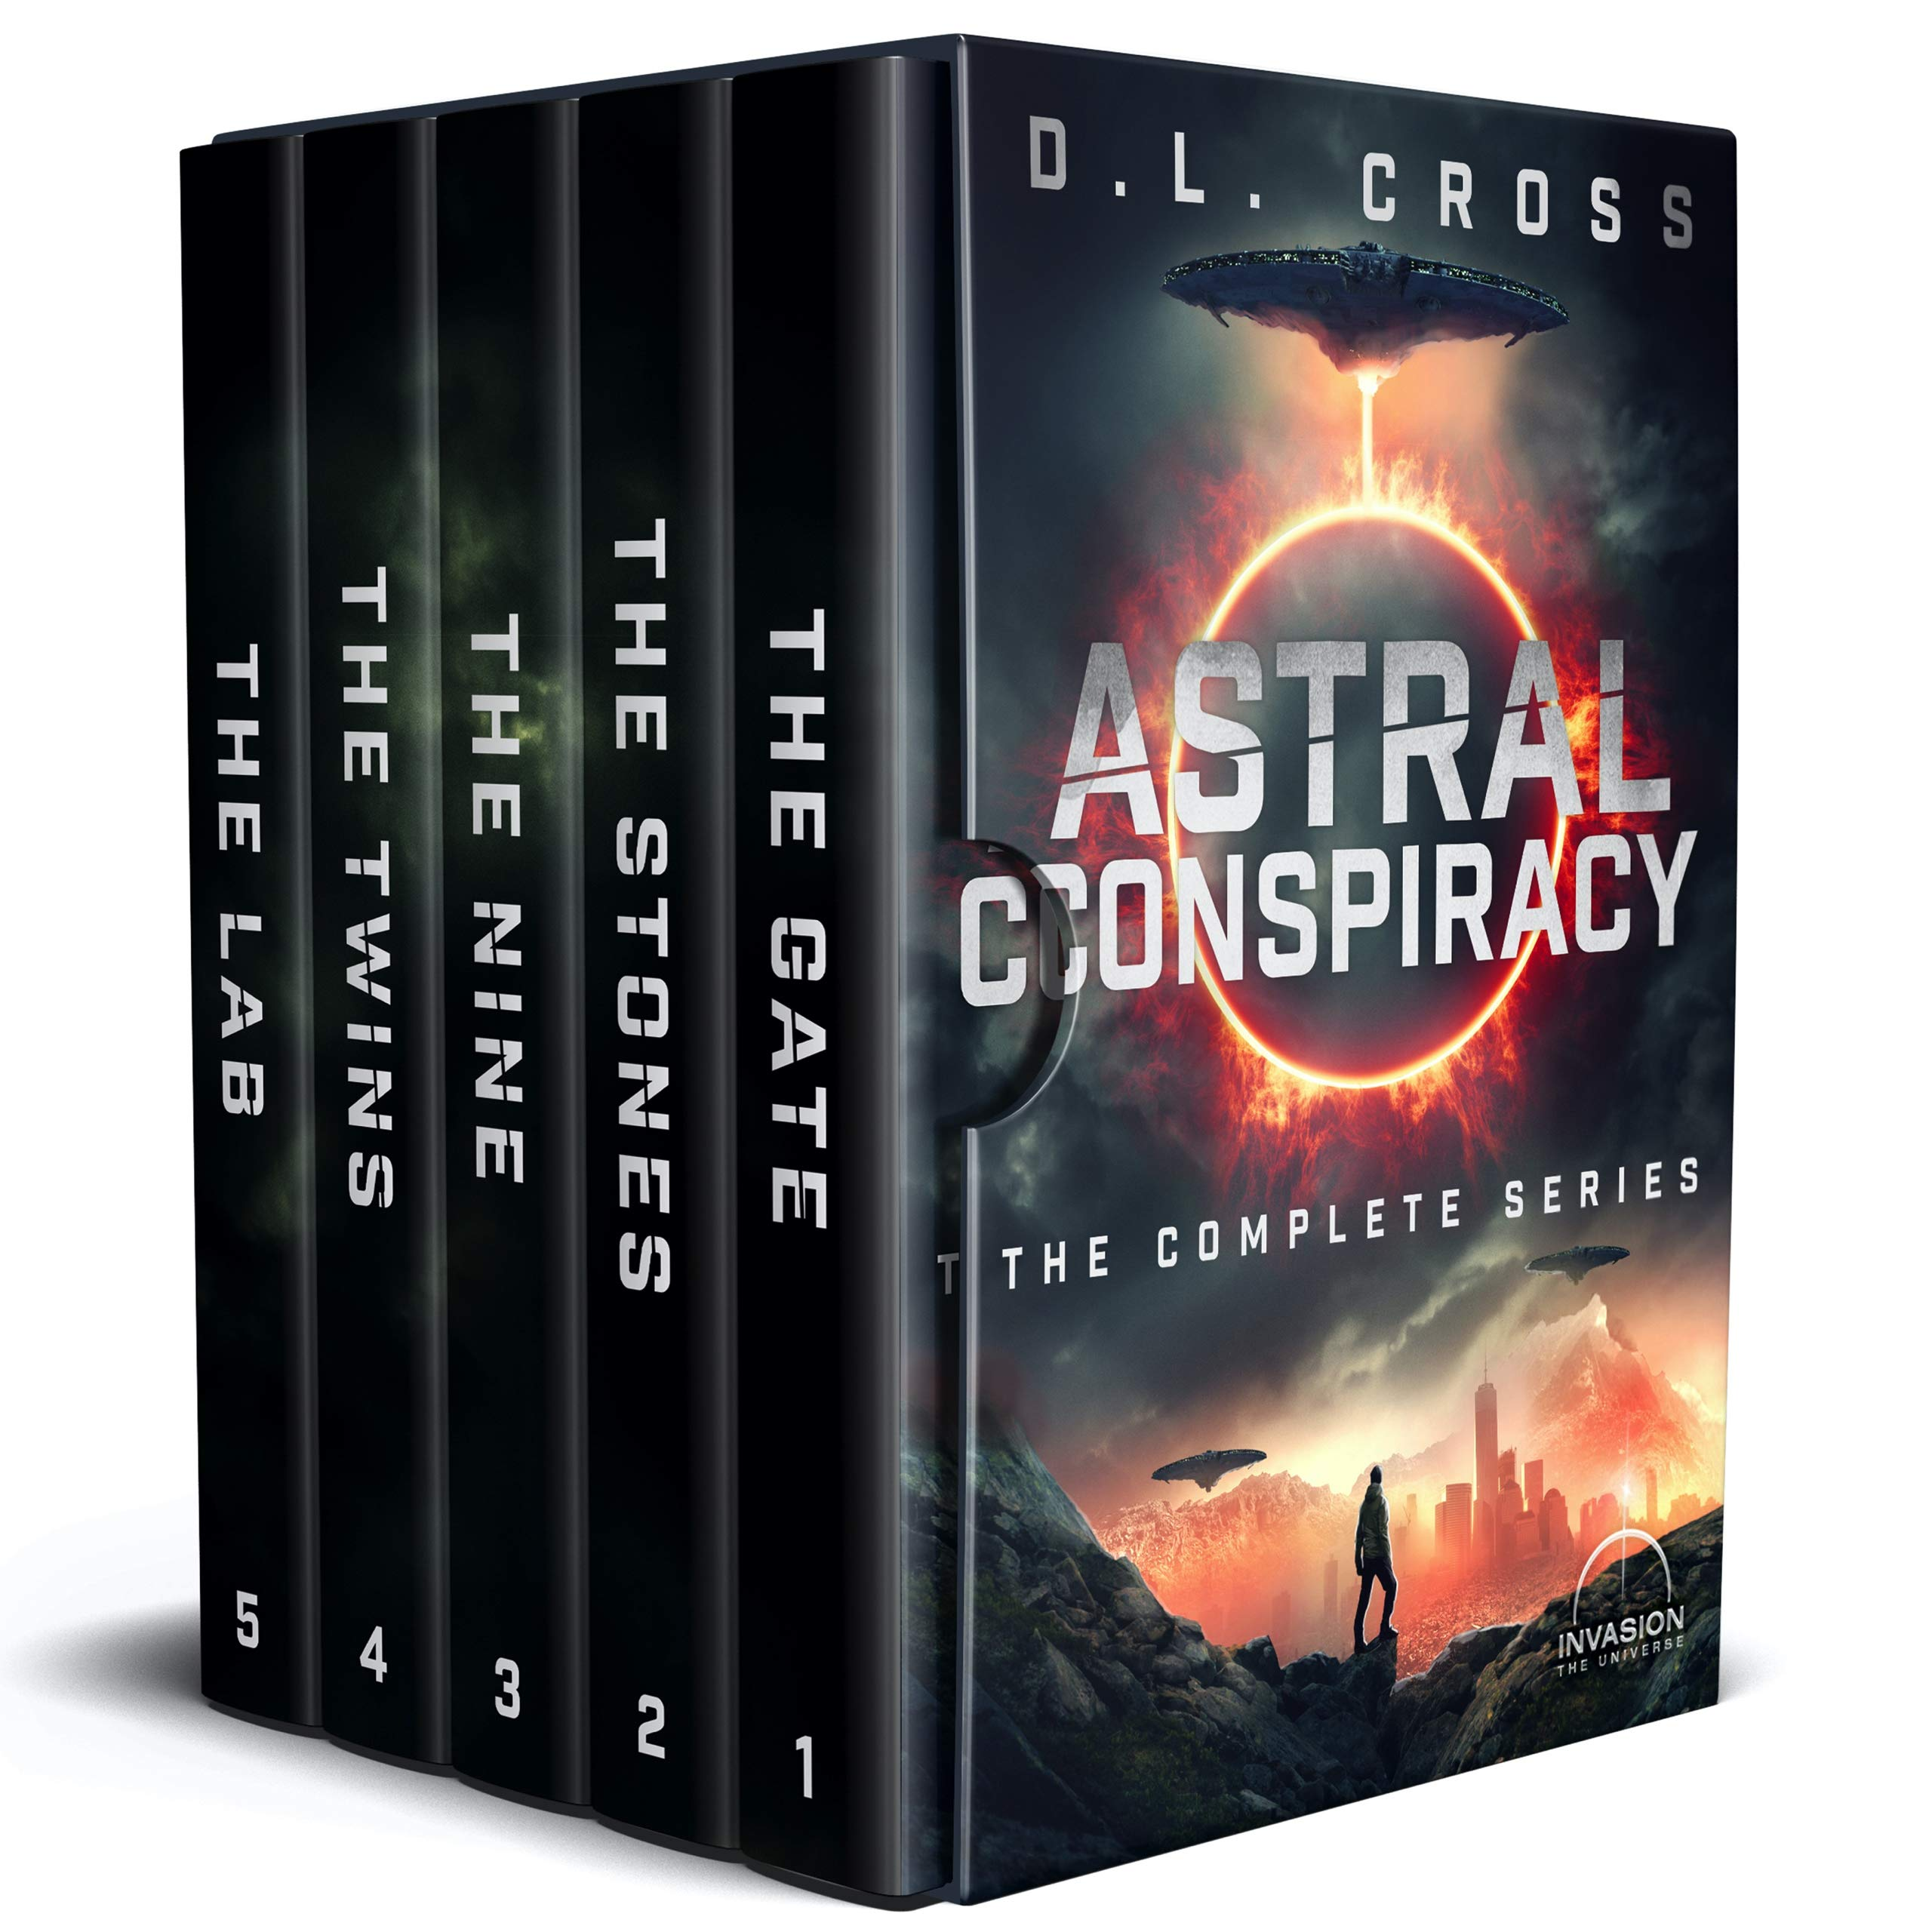 Astral Conspiracy: The Complete Series (An Alien Invasion Science Fiction Series)